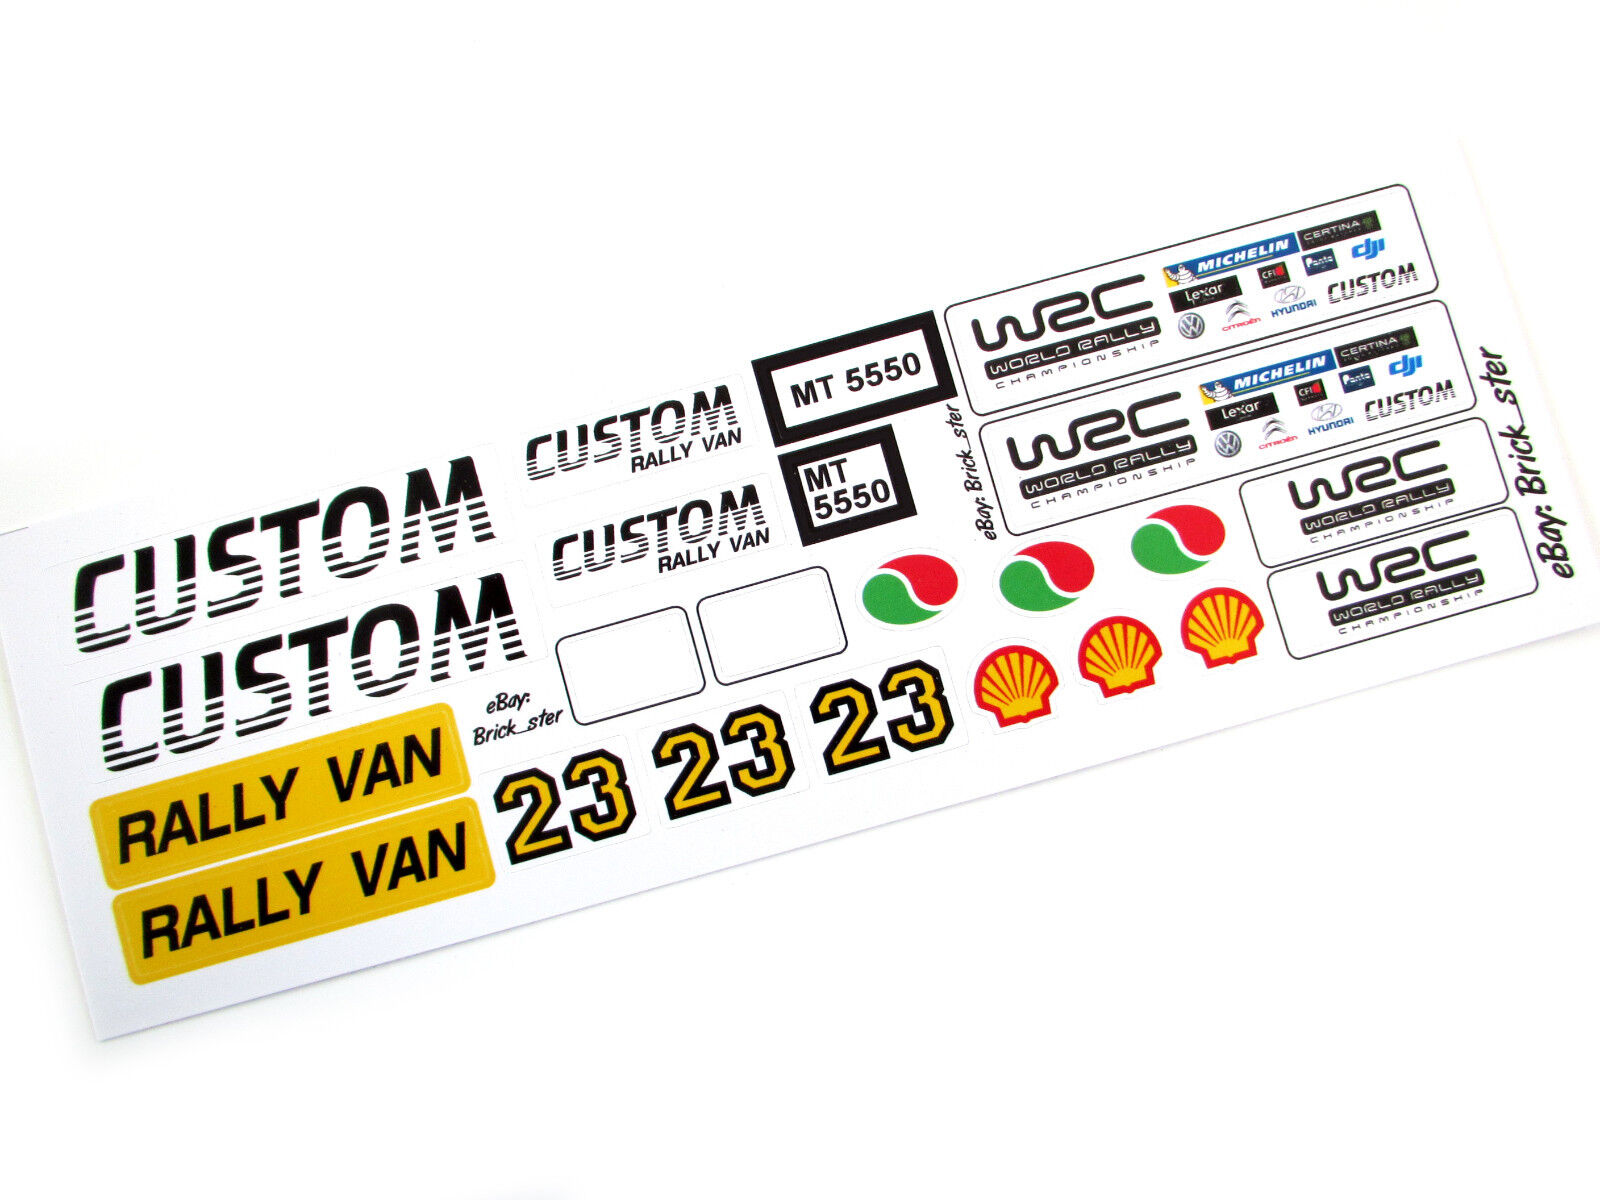 STICKERS for Lego 7848 60016 4432 3180 CUSTOM TRUCK BUILDS Models Toys Etc